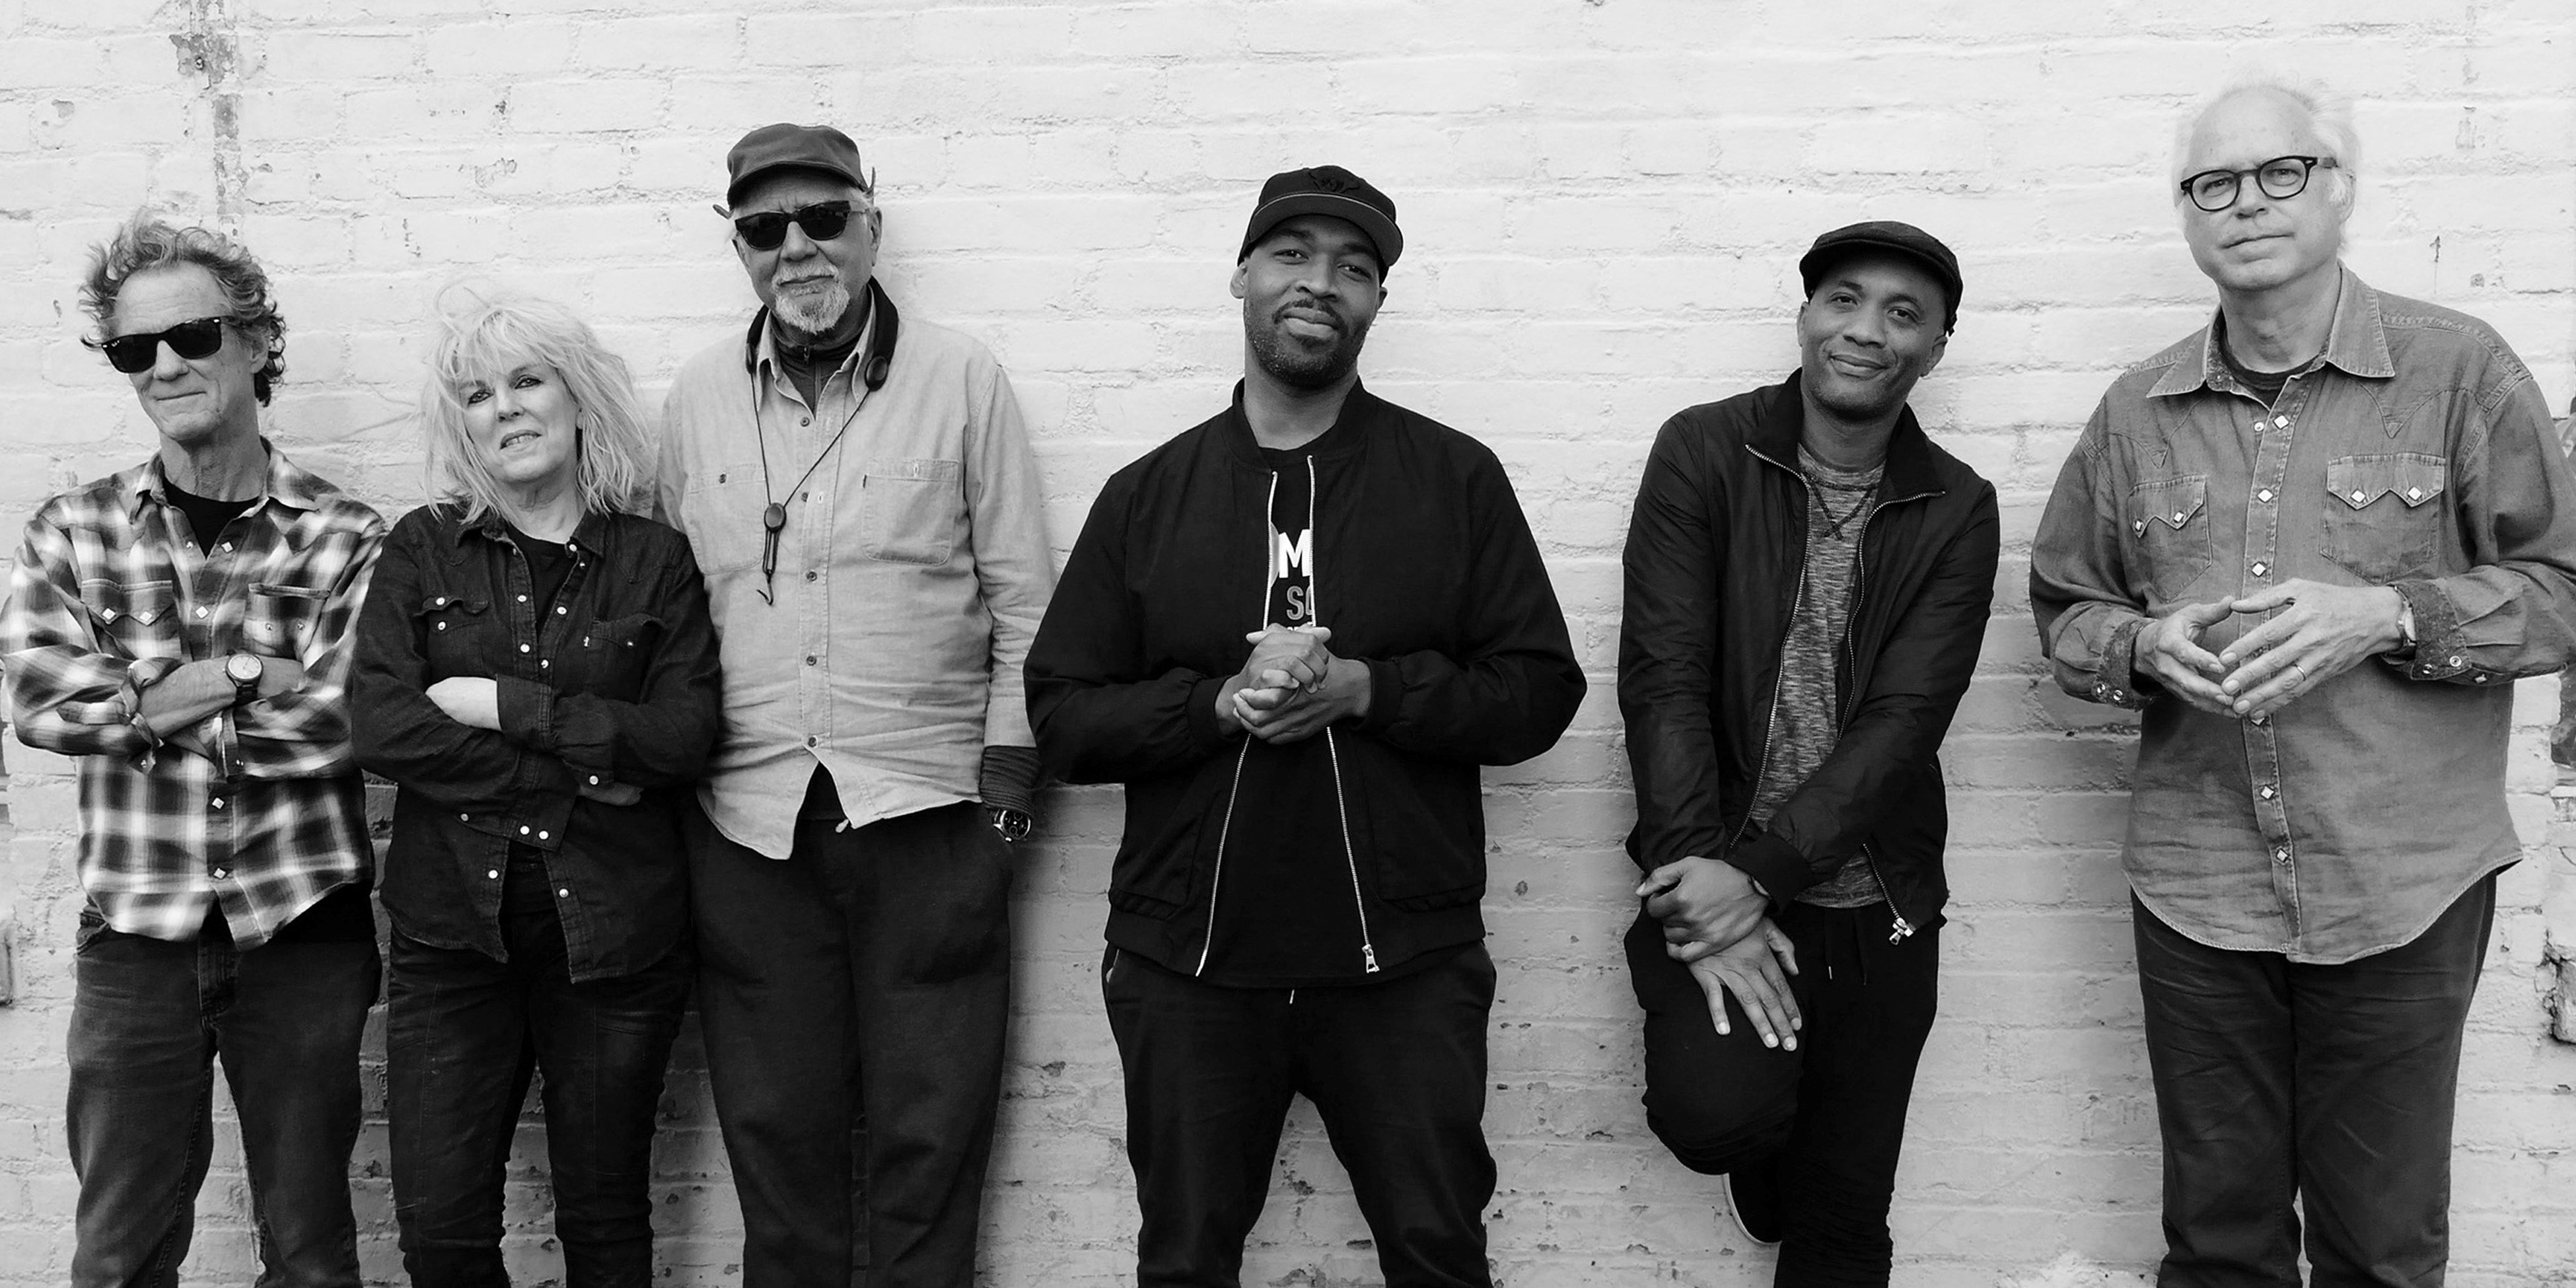 Charles Lloyd & The Marvels + Lucinda Williams to release new album on June 29.